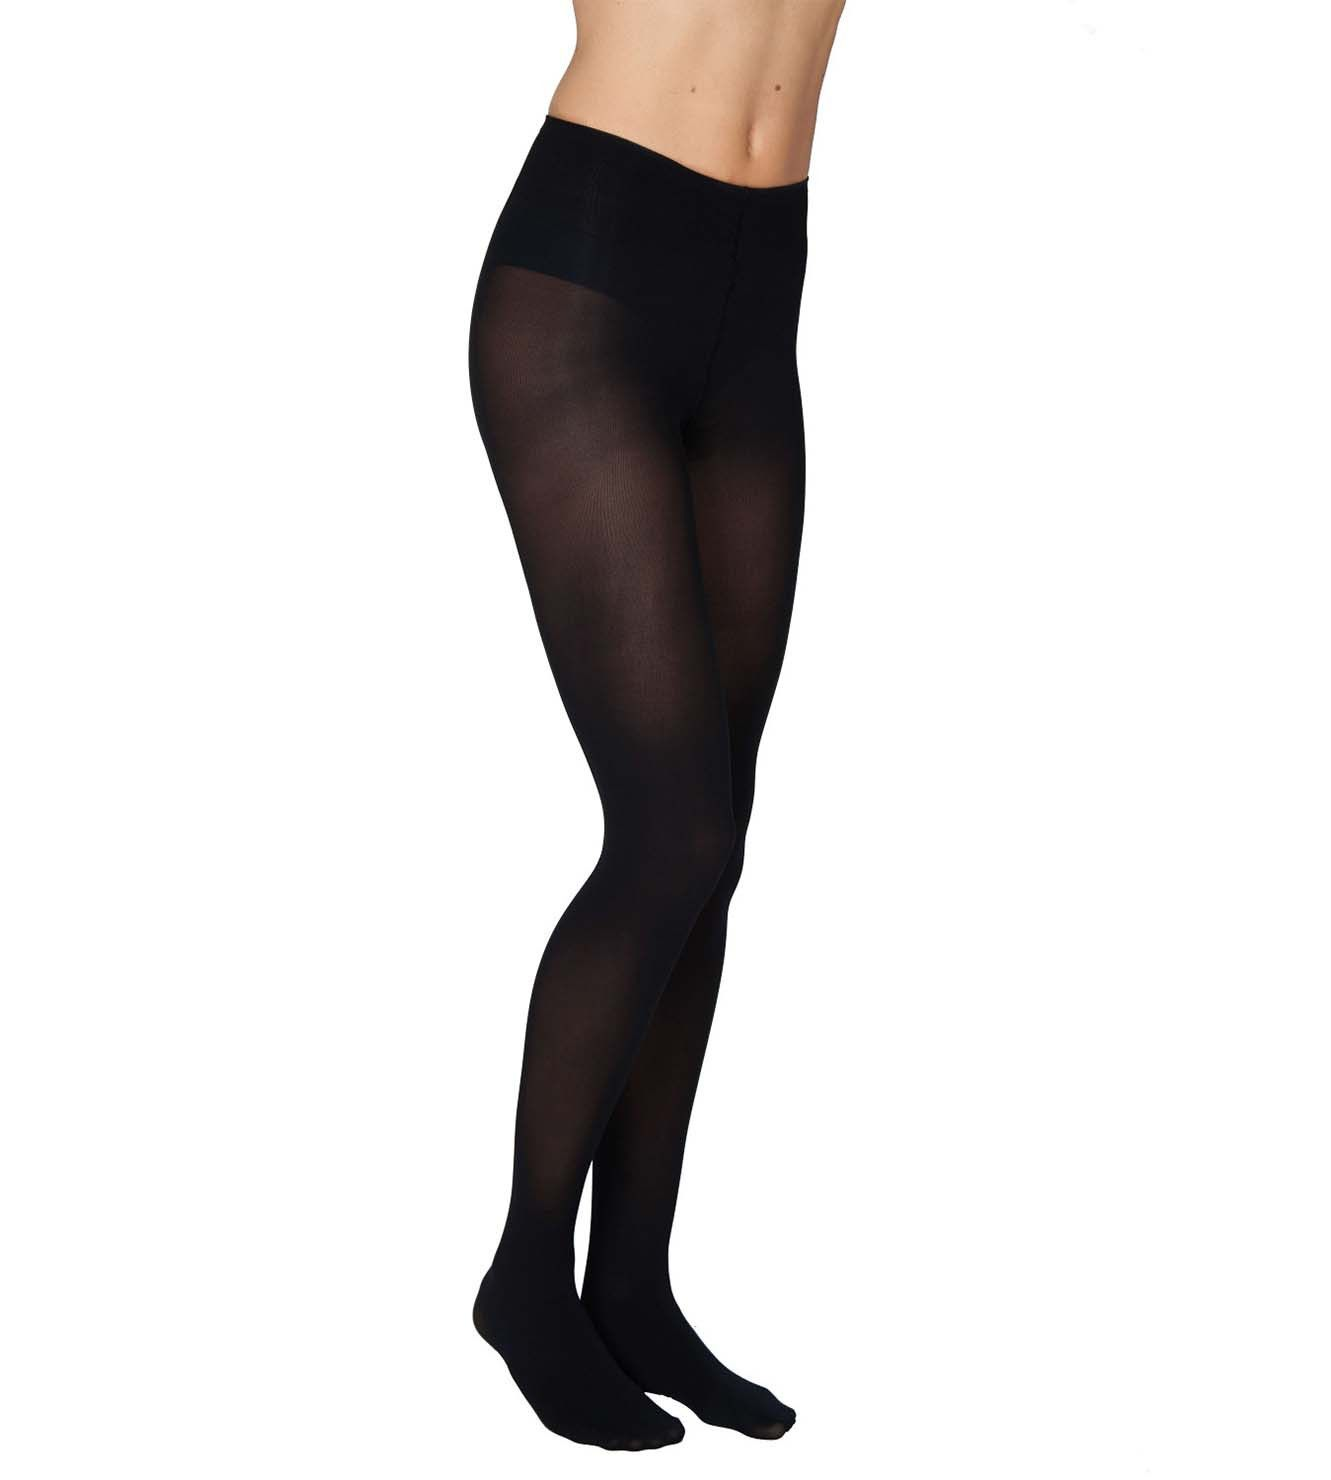 Swedishstockings  Olivia Black 60 Denier - Premium Stockings  Affordable, made from recycled yarn!